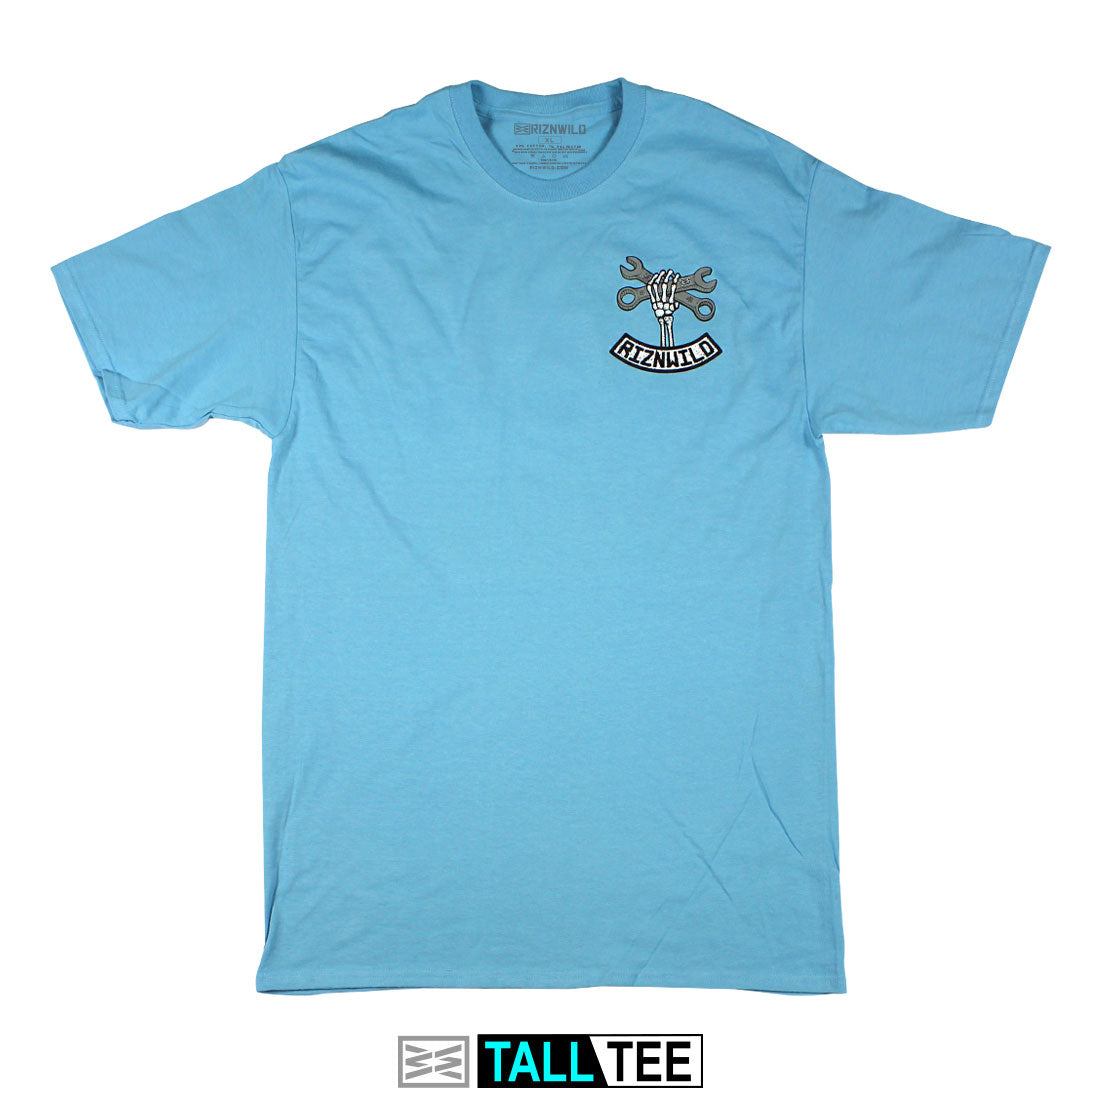 Wrench Twist Mens Tall Tee in Aquatic Blue